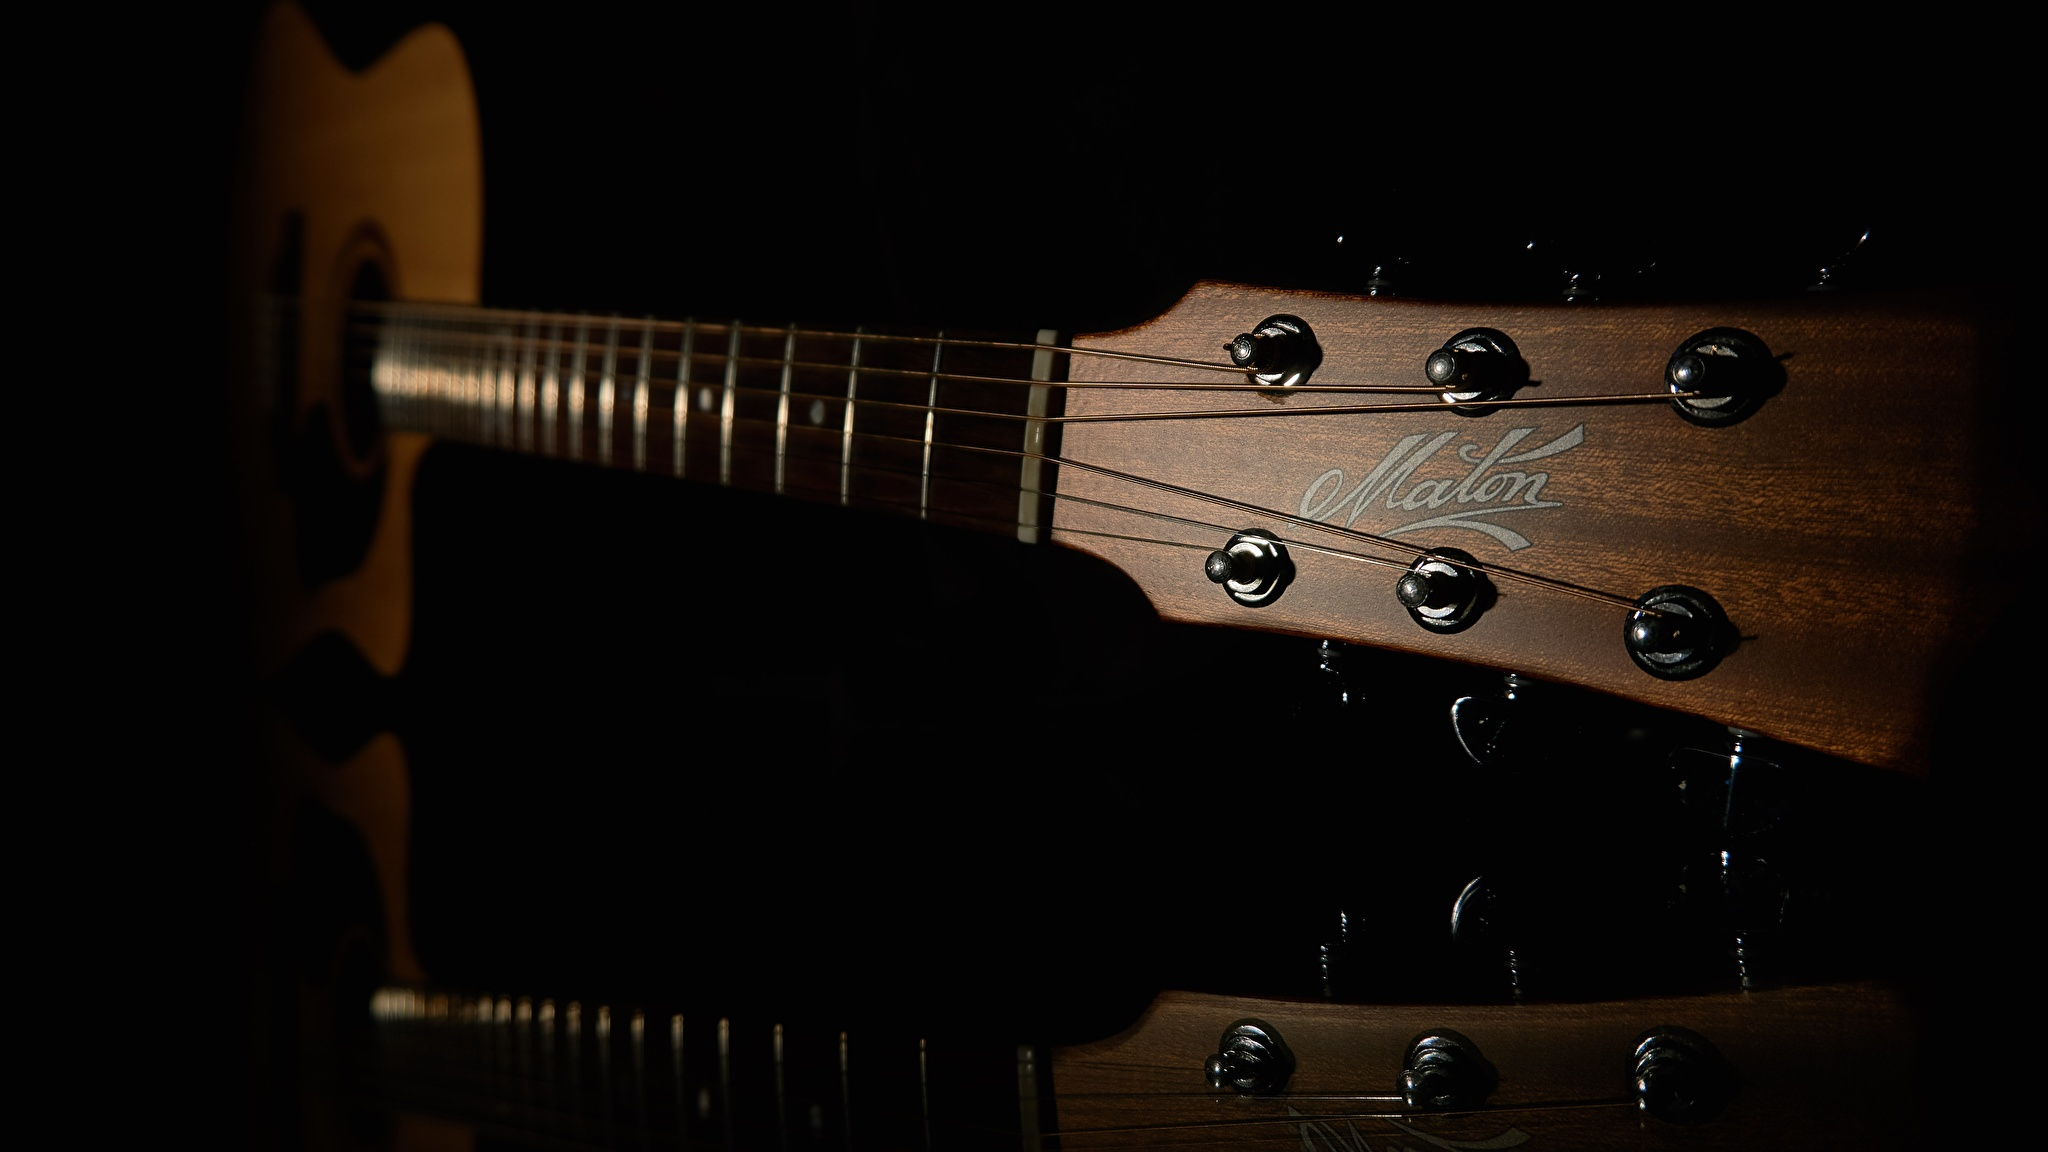 Guitar Wallpaper Download Fondo De Pantalla Guitarra